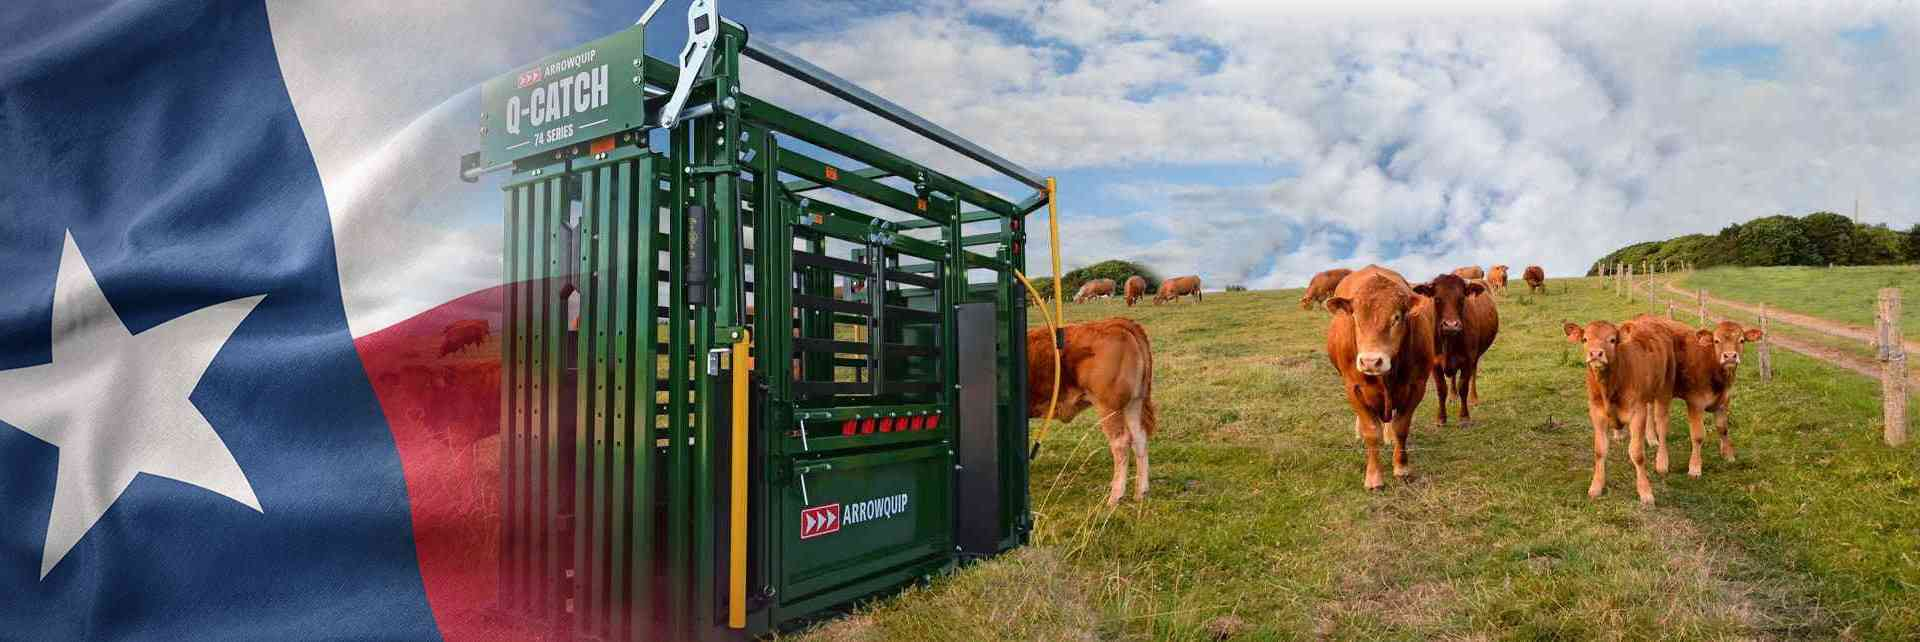 Q-Catch 74 Series Squeeze Chute on pasture with cattle with Texas flag